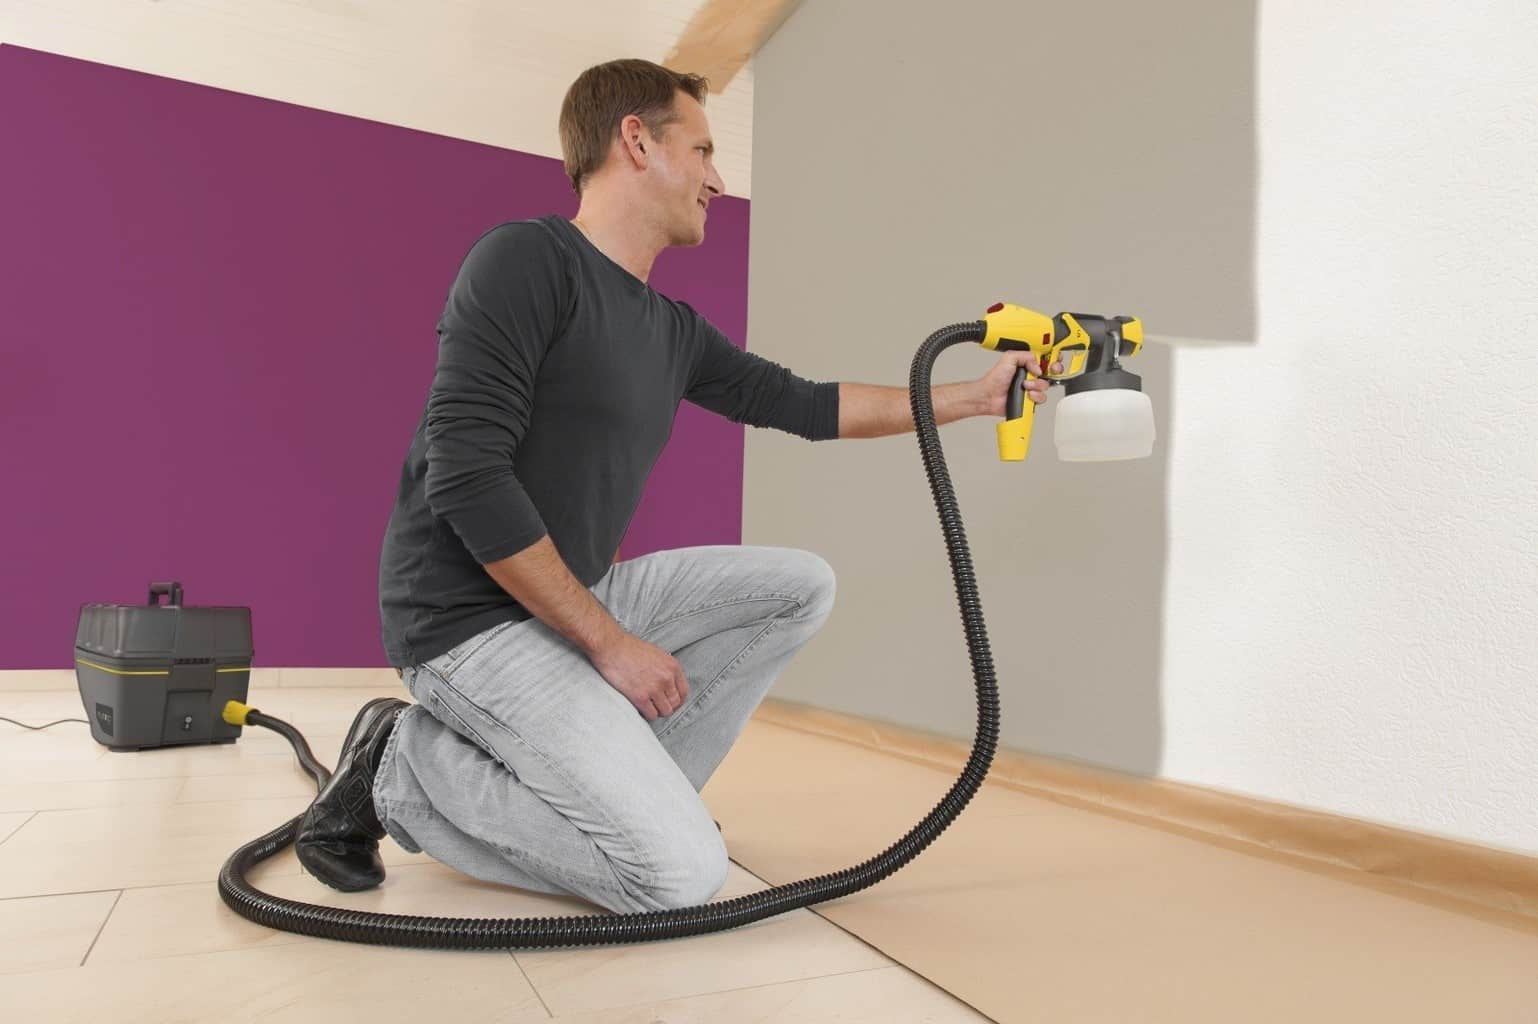 Man in a casual outfit uses a HVLP paint sprayer to paint the walls of his home gray and purple